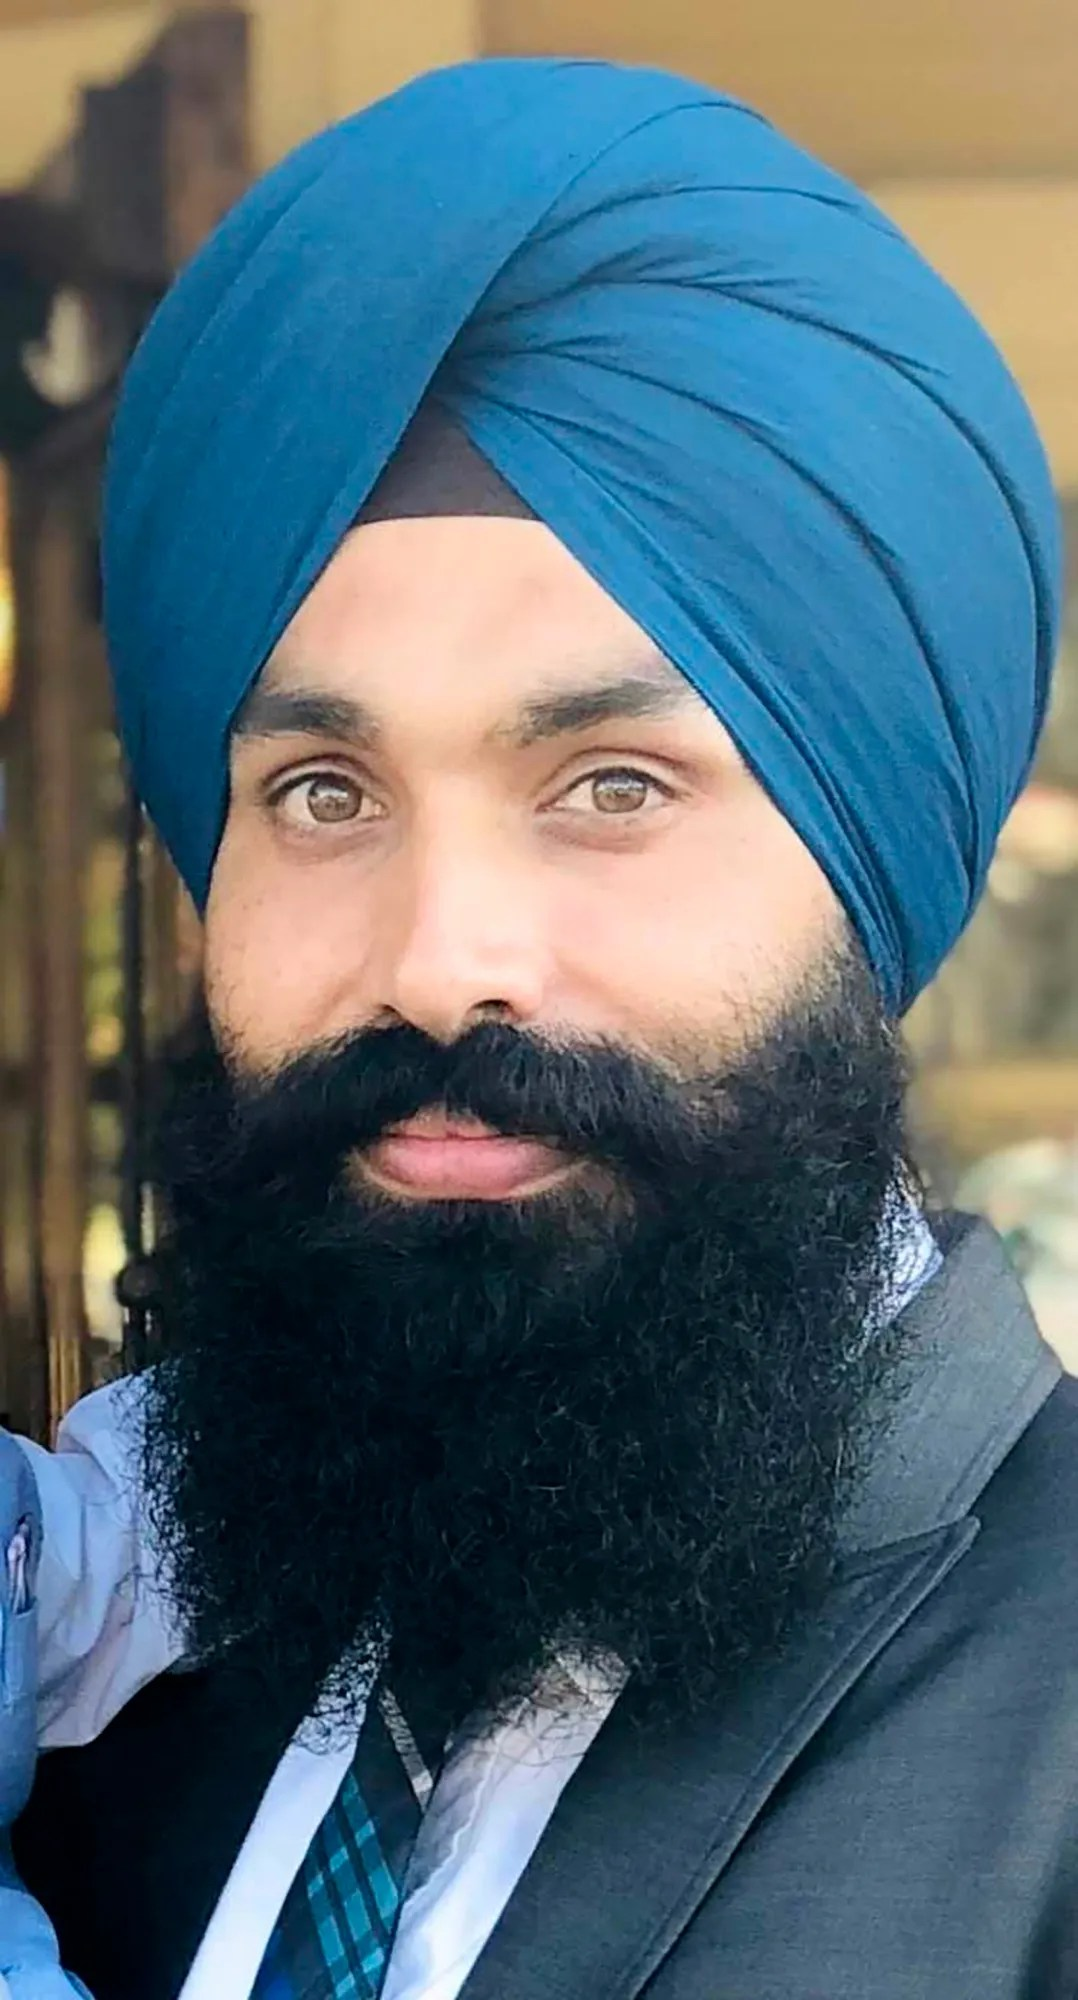 This undated photo provided by the Sikh Coalition shows Taptejdeep Singh, one of the nine victims of a shooting at a Valley Transportation Authority rail yard on Wednesday, May 26, 2021, in San Jose, California.